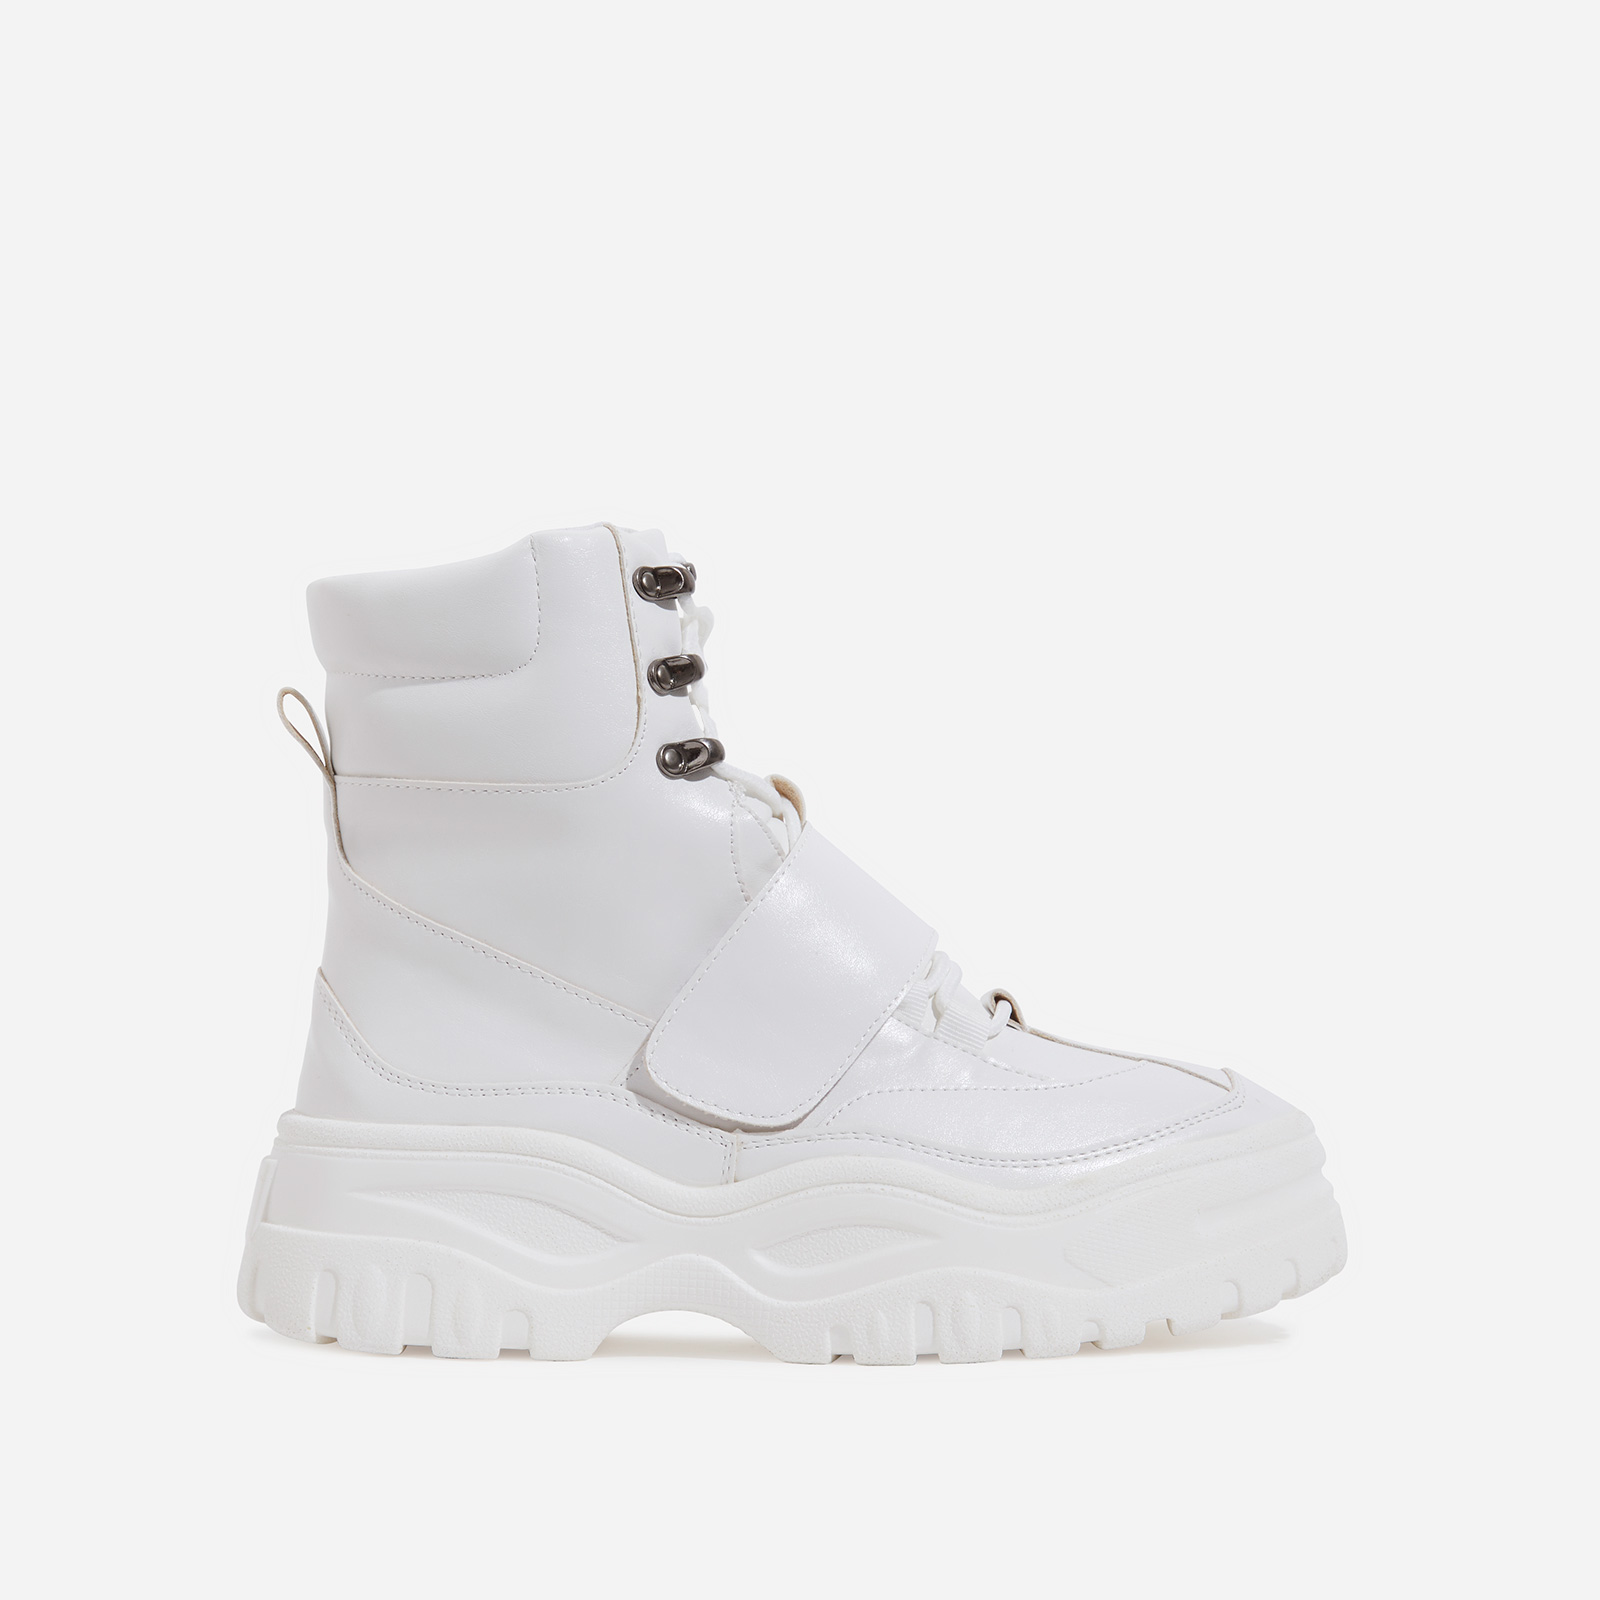 Rover Lace Up Ankle Hiker Boot In White Faux Leather